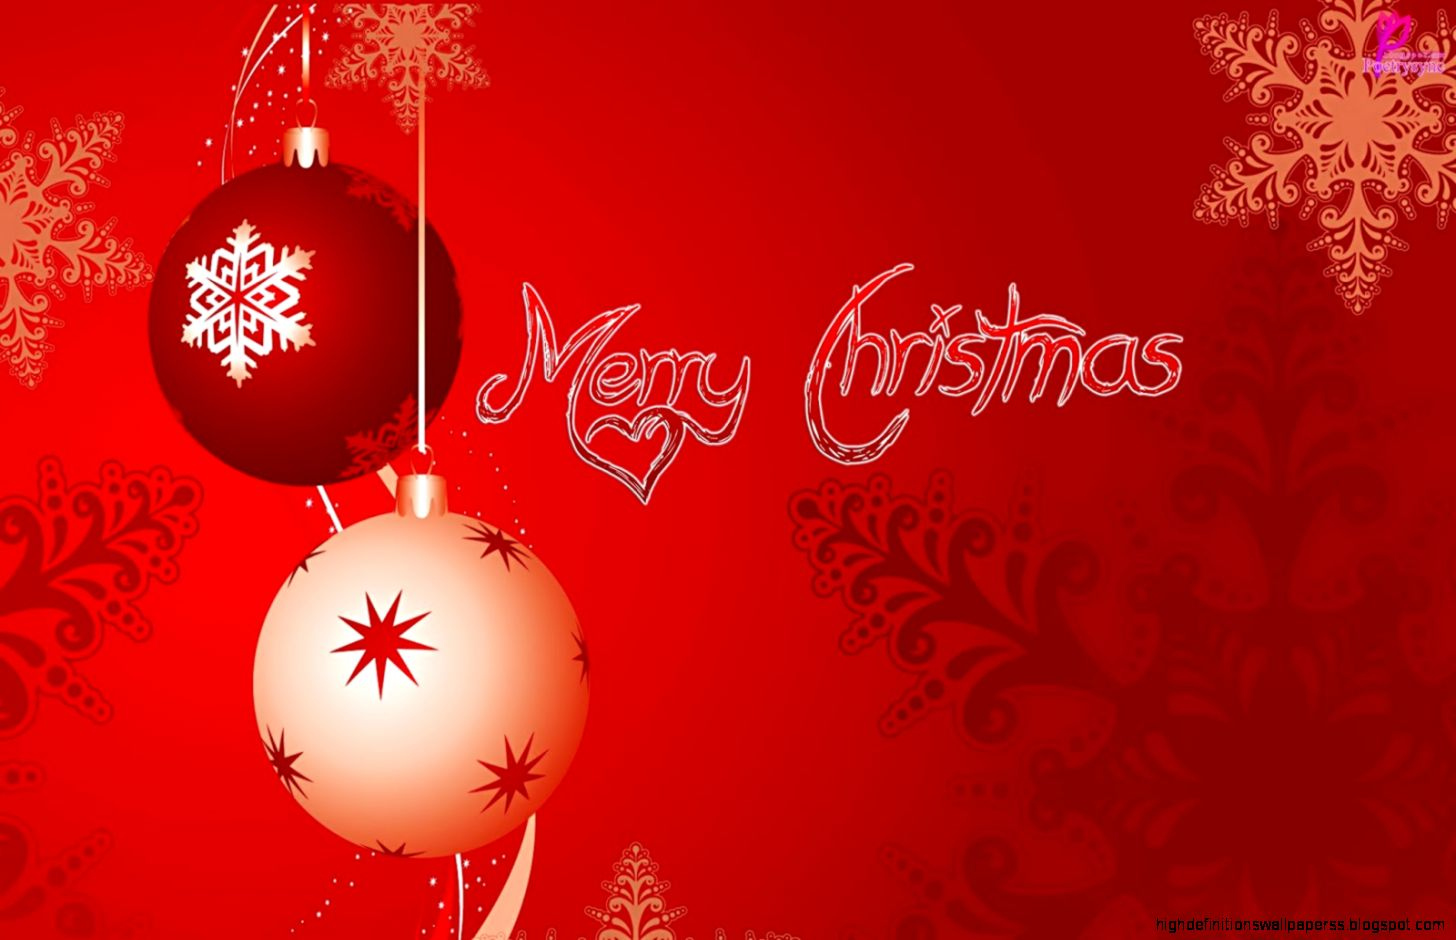 Merry Christmas And Happy New Year Red Ball Wallpaper High